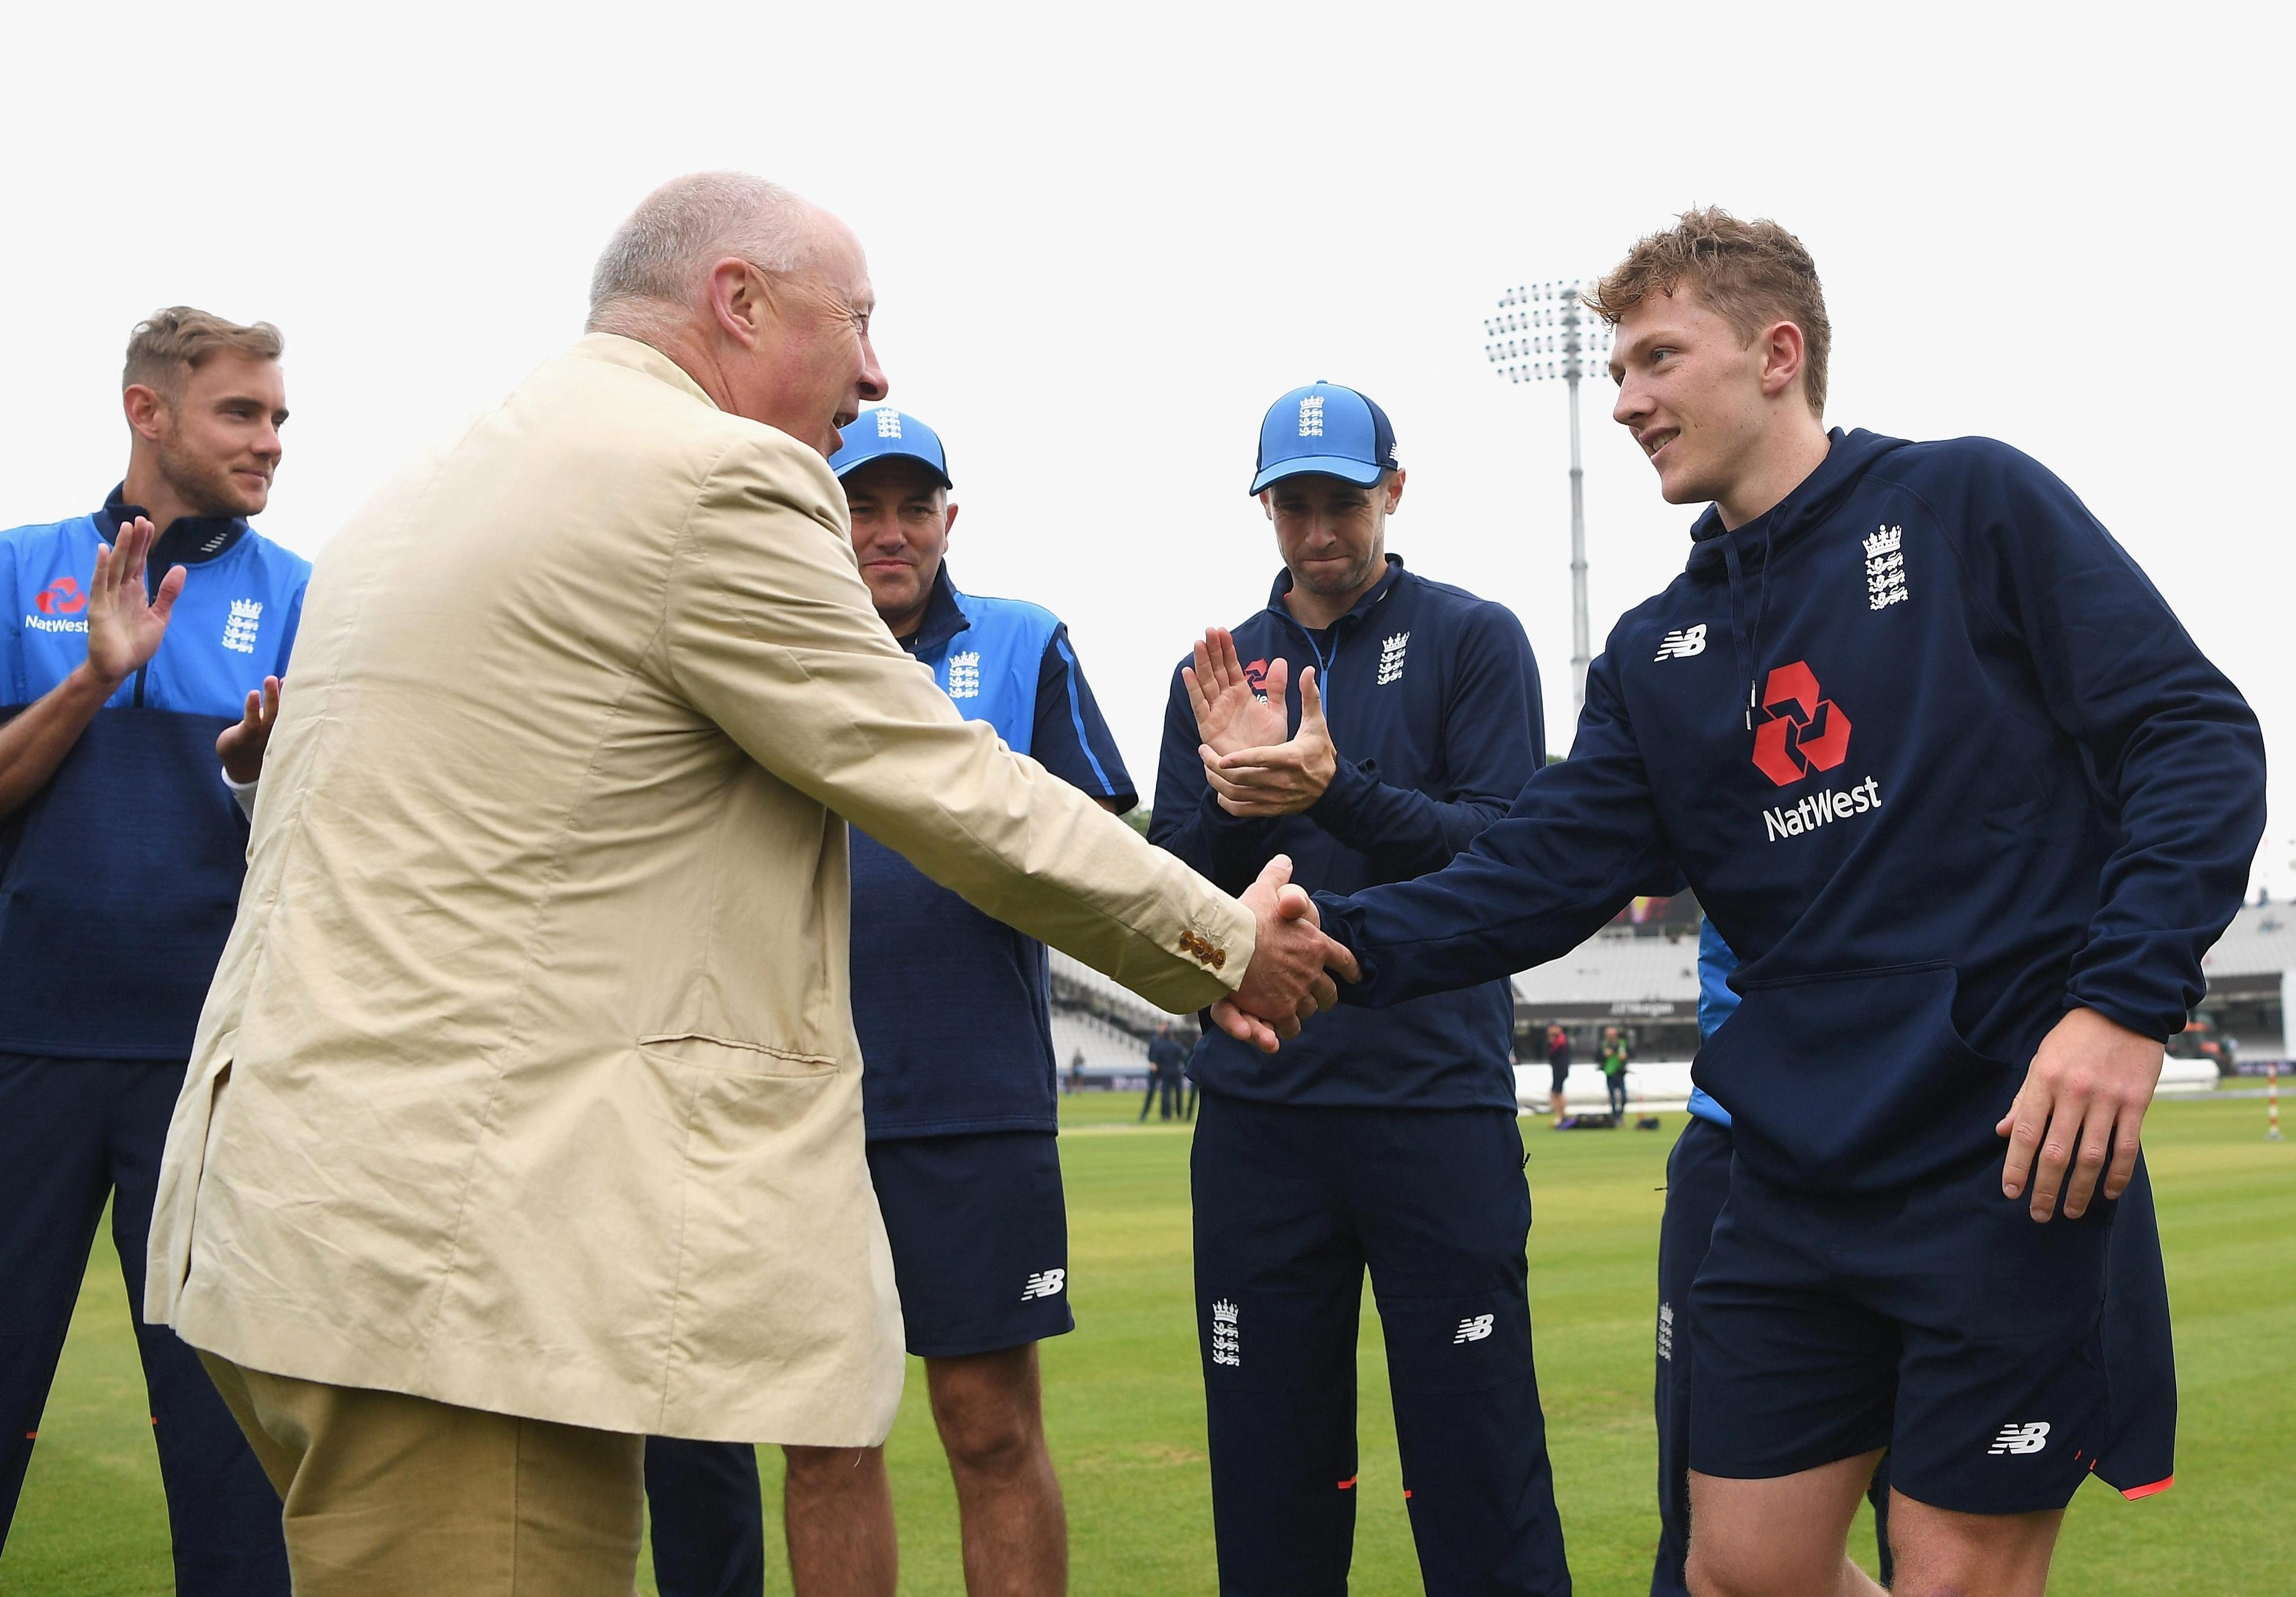 Spinner Dom Bess is awarded his first Test cap before the start of play